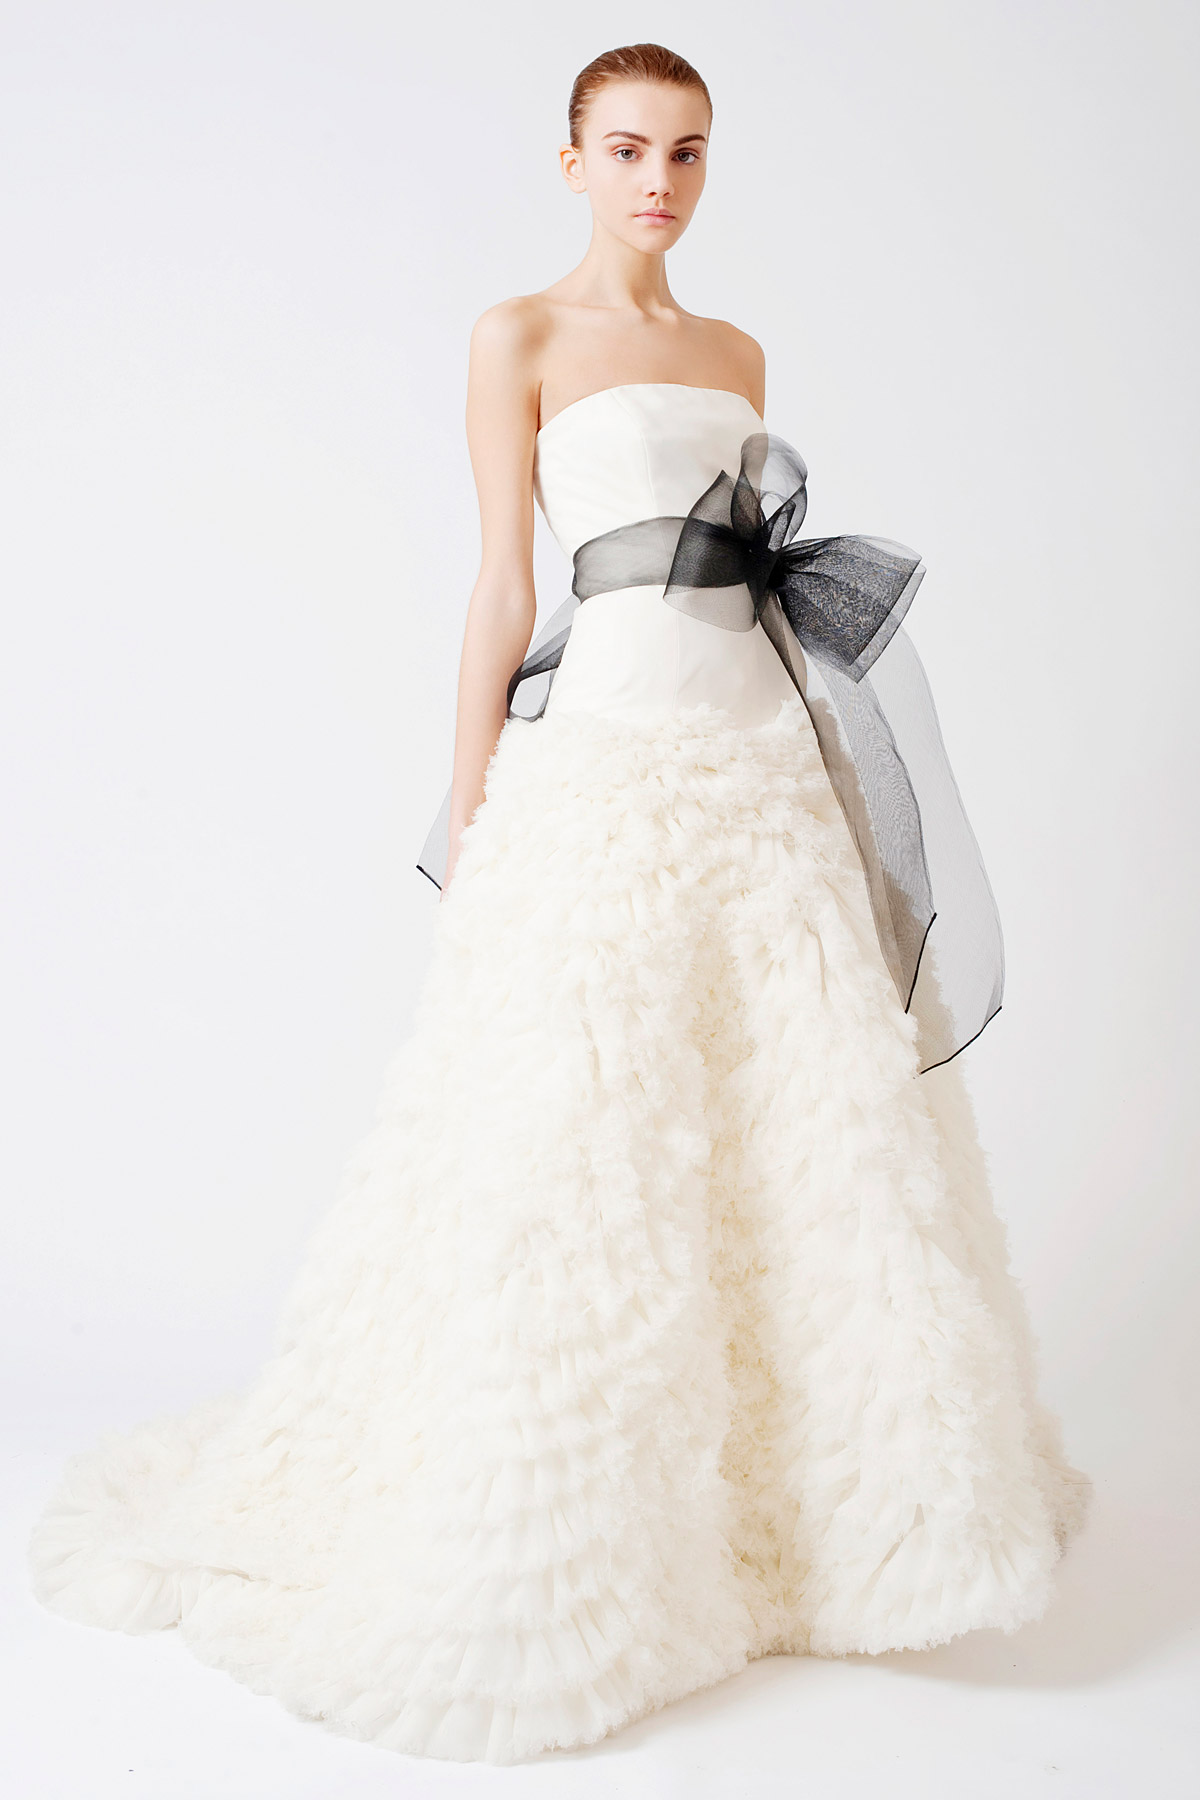 A simple guide for different wedding dress styles for Wedding dress styles guide